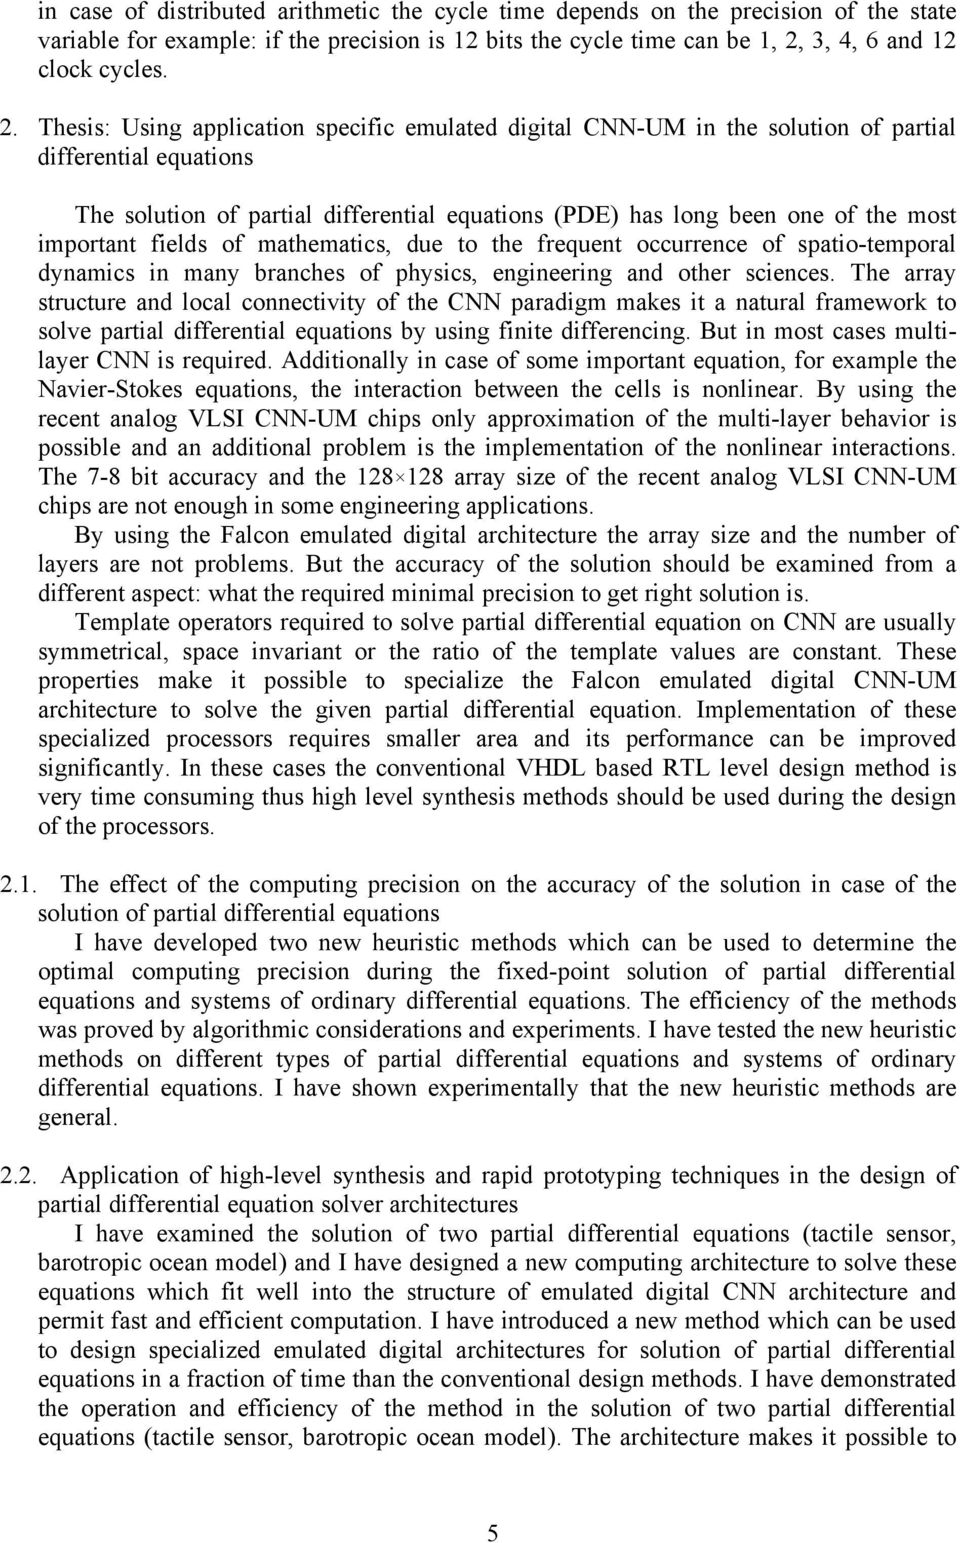 Thesis: Using application specific emulated digital CNN-UM in the solution of partial differential equations The solution of partial differential equations (PDE) has long been one of the most